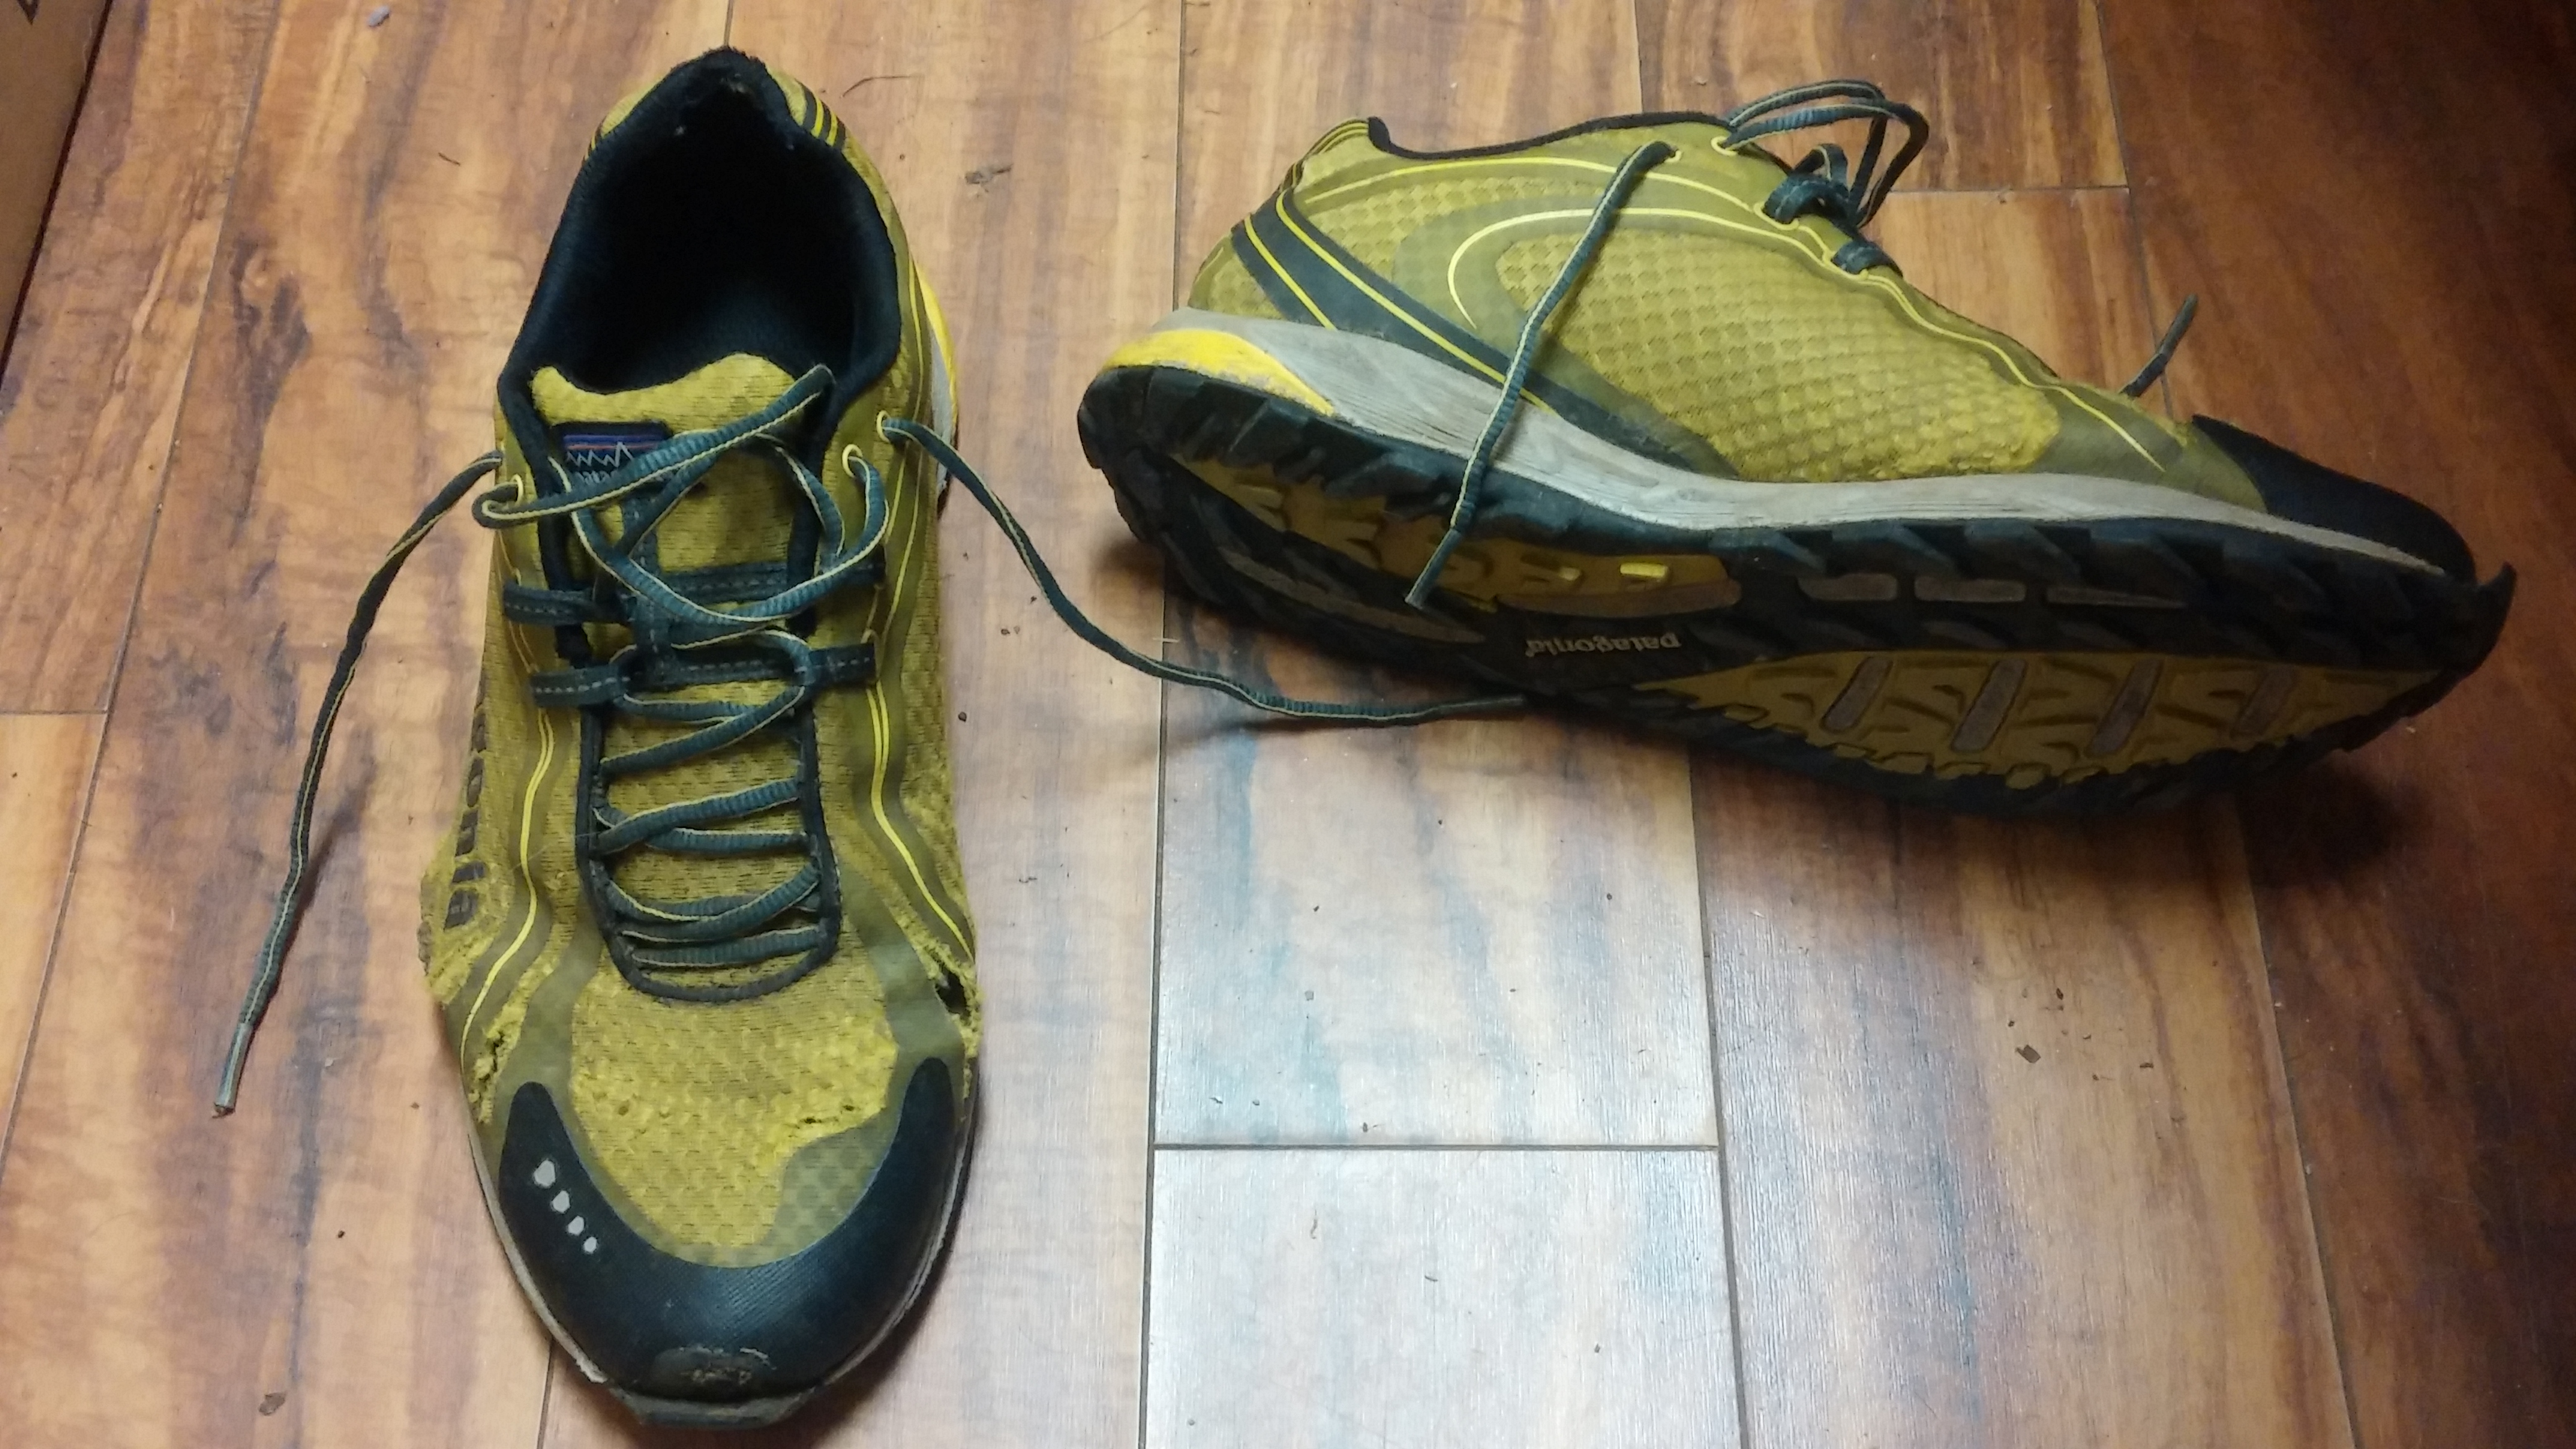 Patagonia Tsali 3.0 - retired after 577 miles